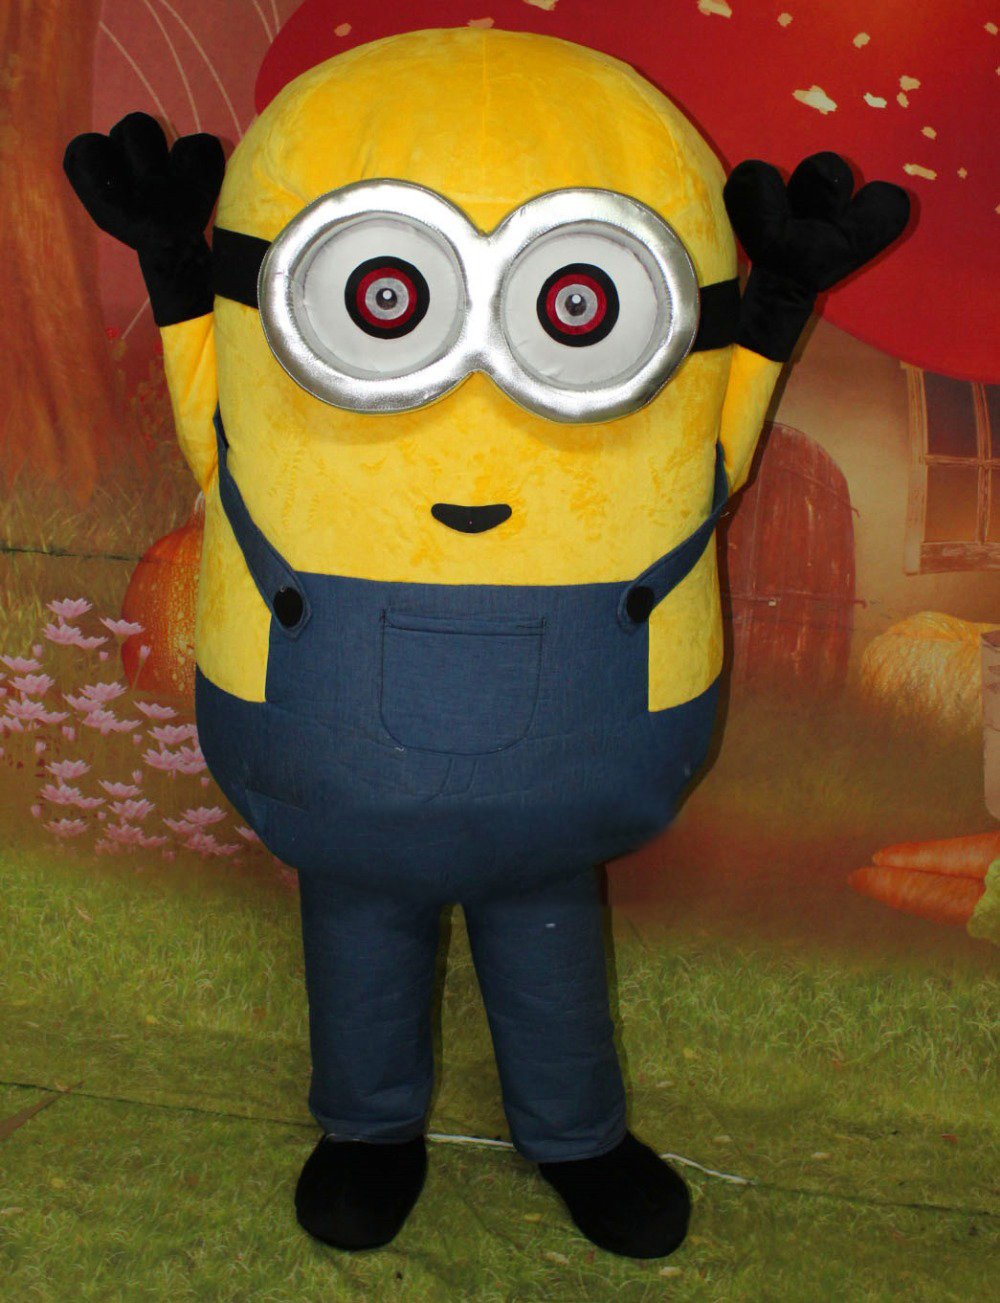 2018 New Hot Selling Movie Character Minion Inflatable Mascot Costume Halloween Party Costume Performance Cartoon Clothing